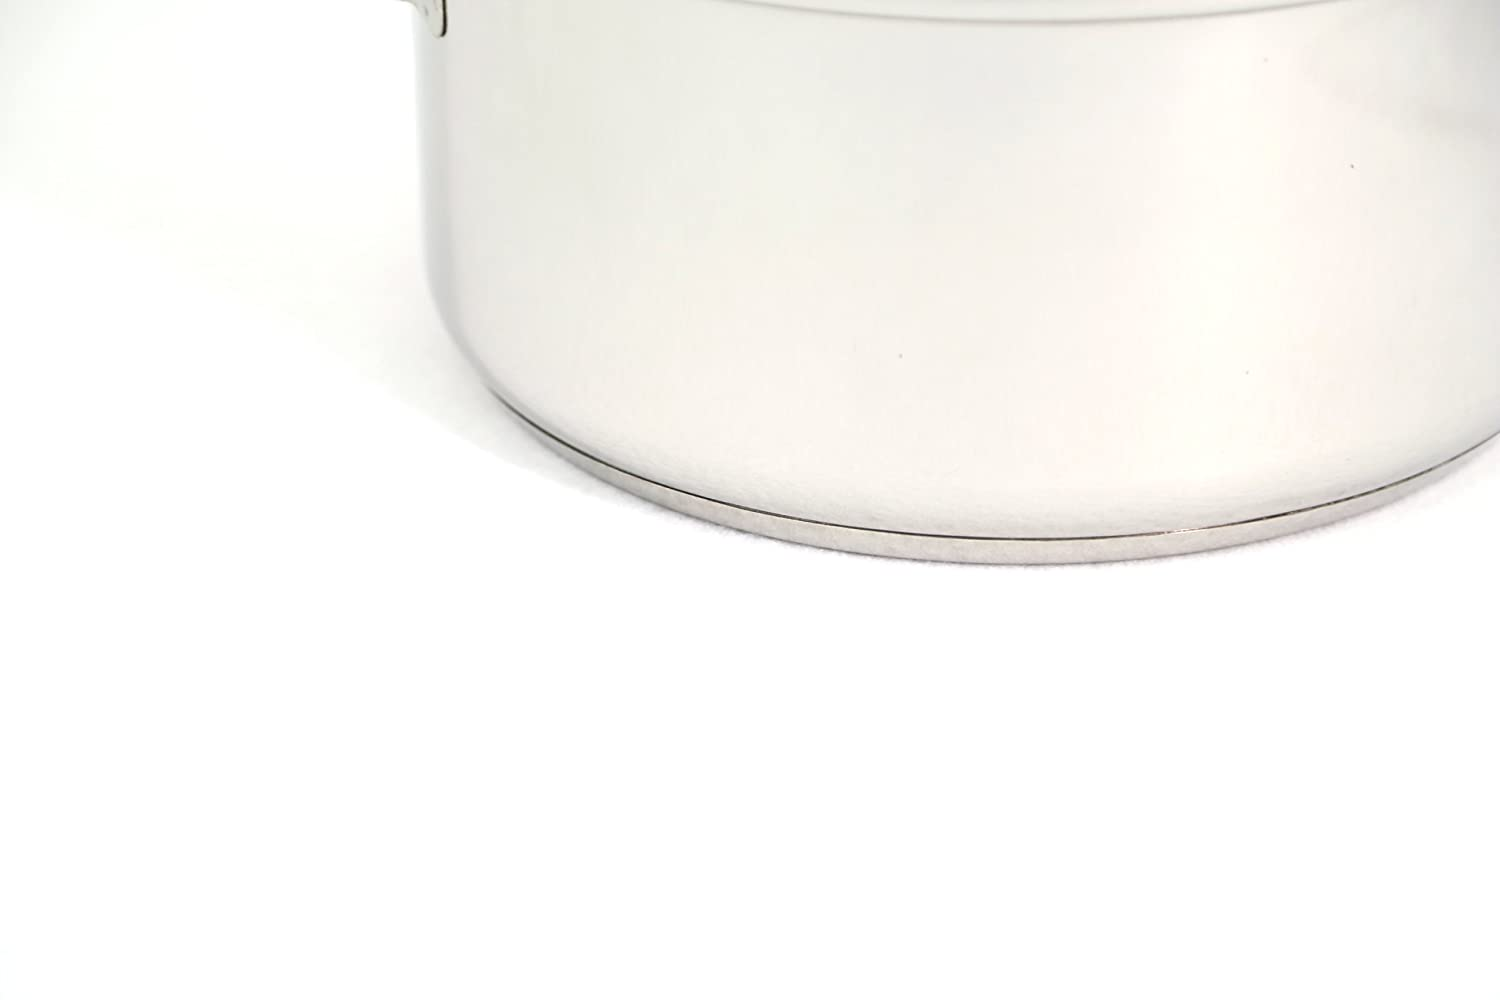 Excelsteel 16 Quart Stainless Steel Stockpot With Encapsulated Base